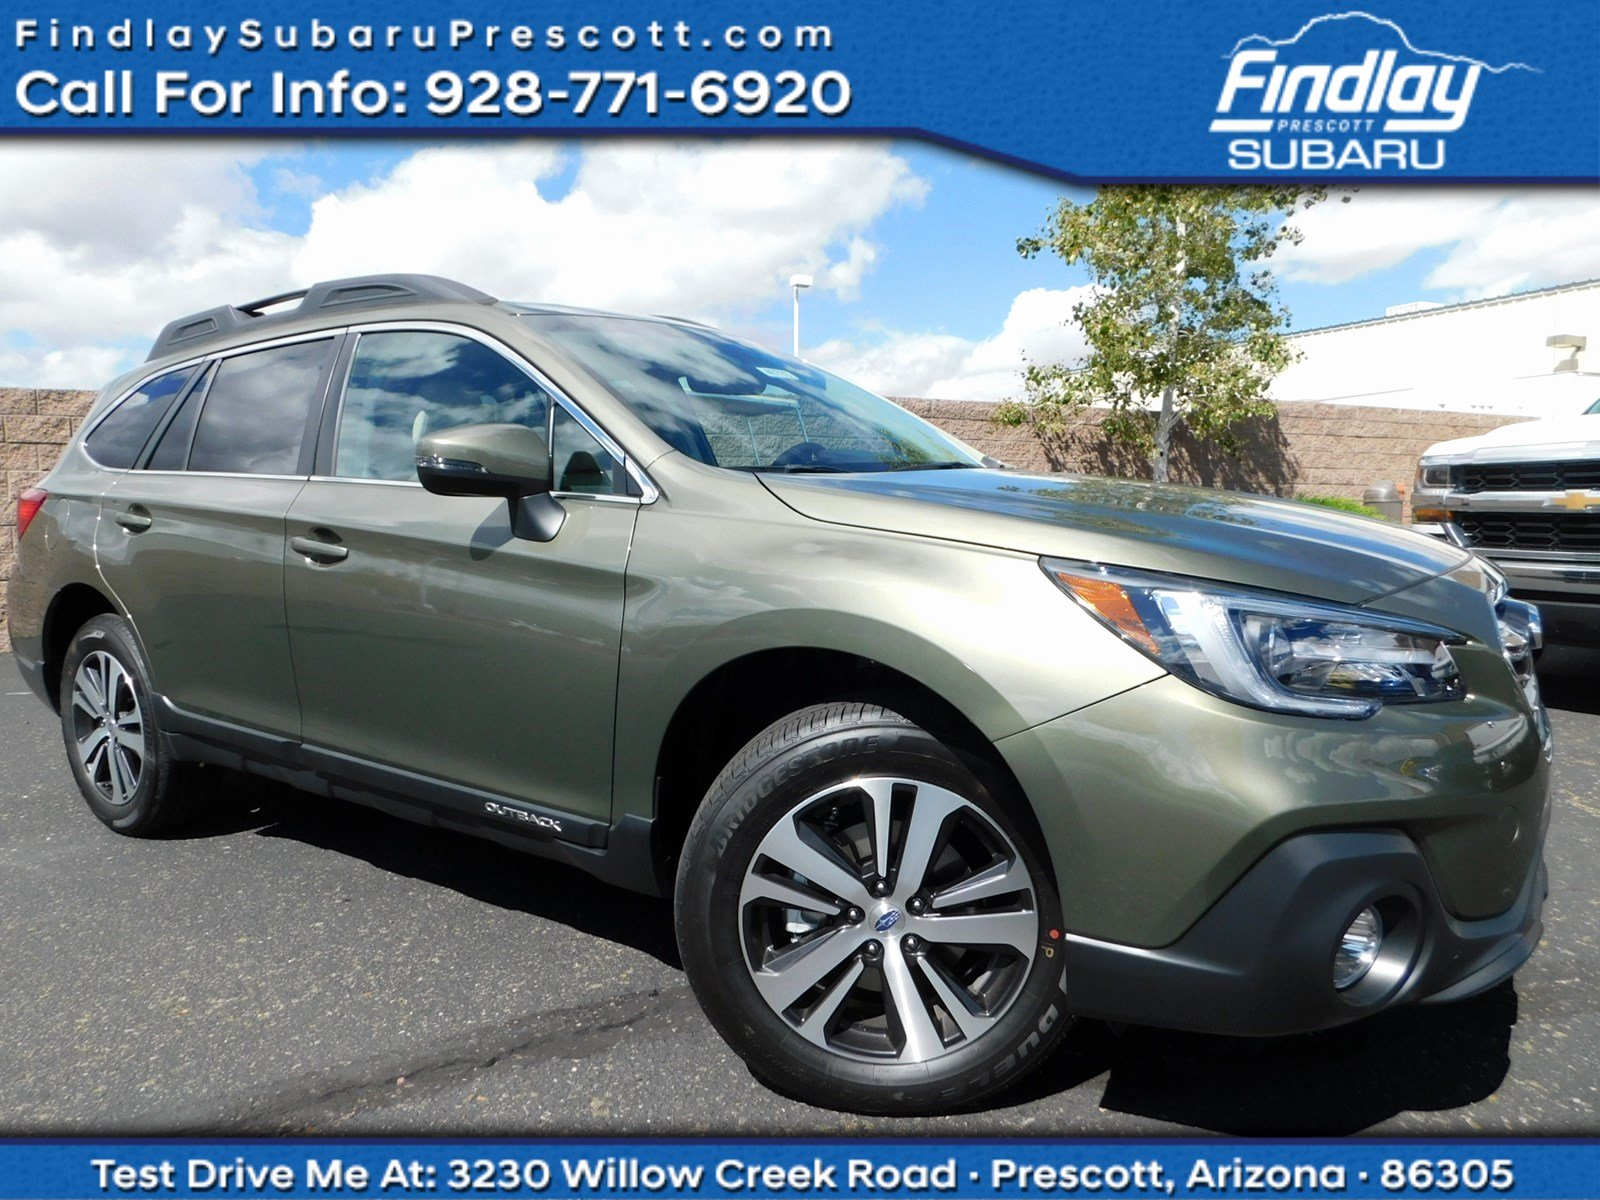 Airport Acura Beautiful social Security Prescott Az Luxury New 2019 Subaru Outback Limited